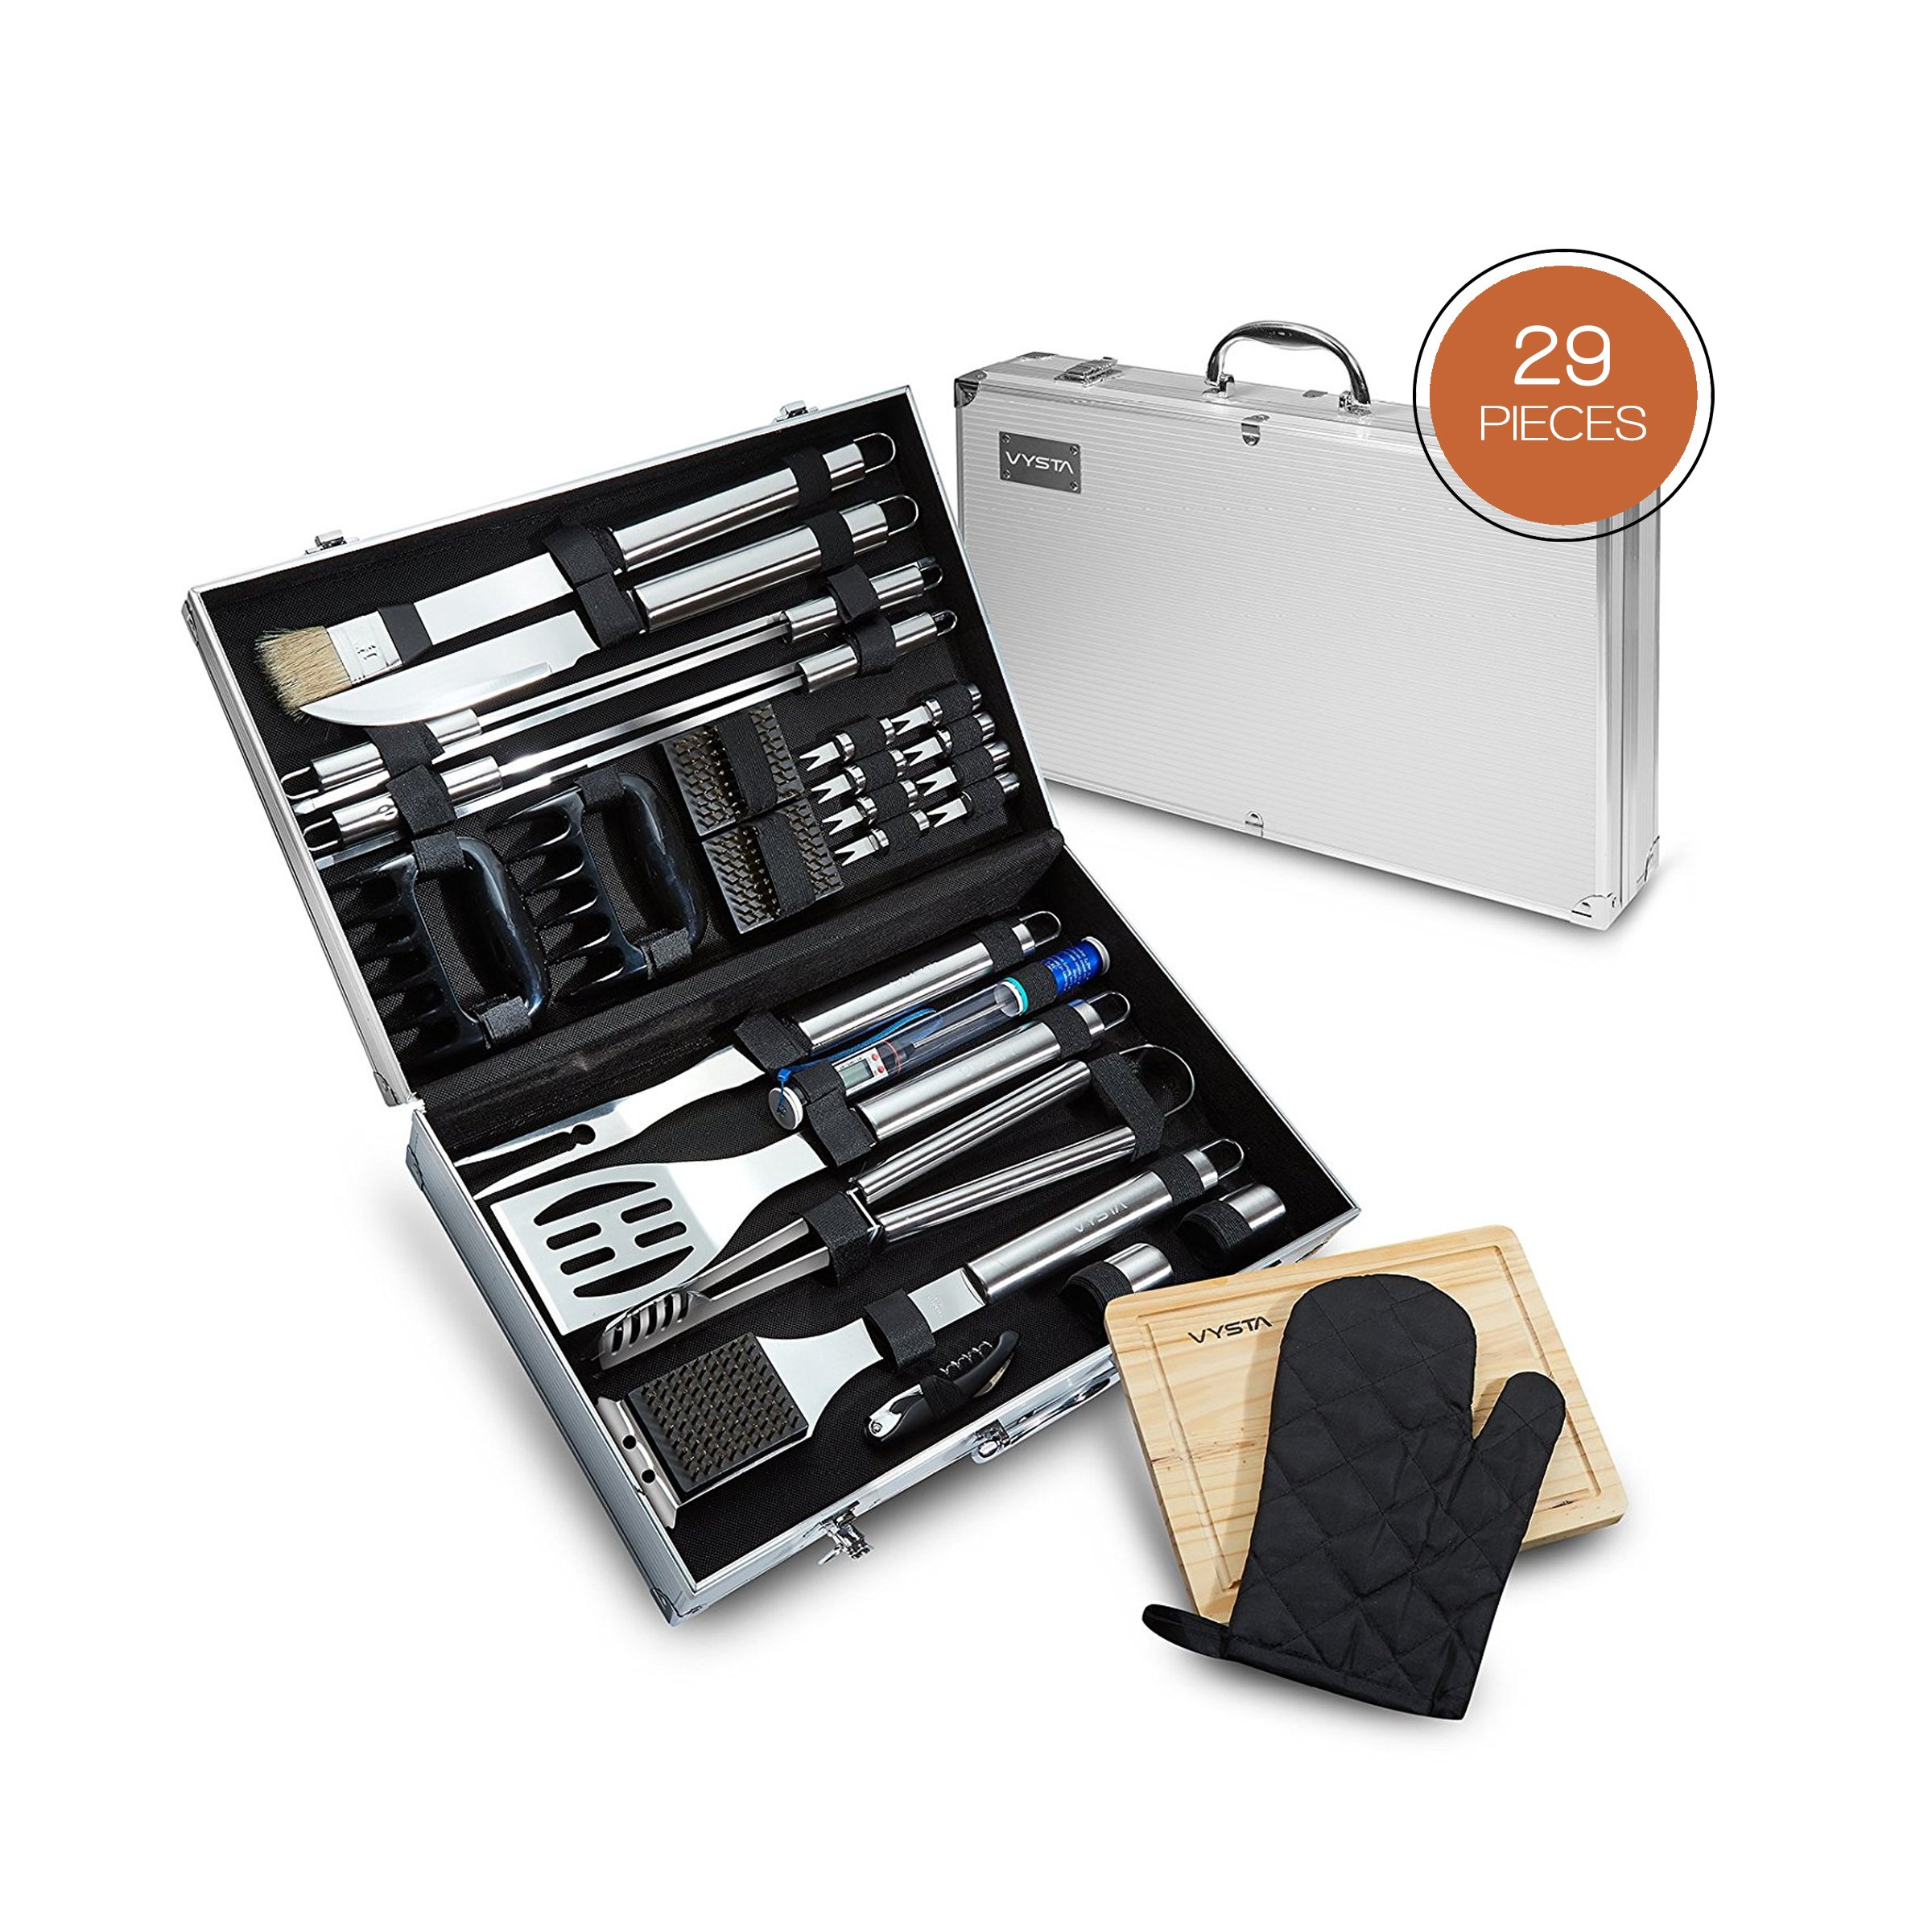 Vysta 29 Piece BBQ Tools Set - Barbecue Accessories With Carrying Case - Professional Grade Stainless Steel Grill Utensils - Spatulas, Tongs, Forks Skewers, Knives, Brushes and More - by